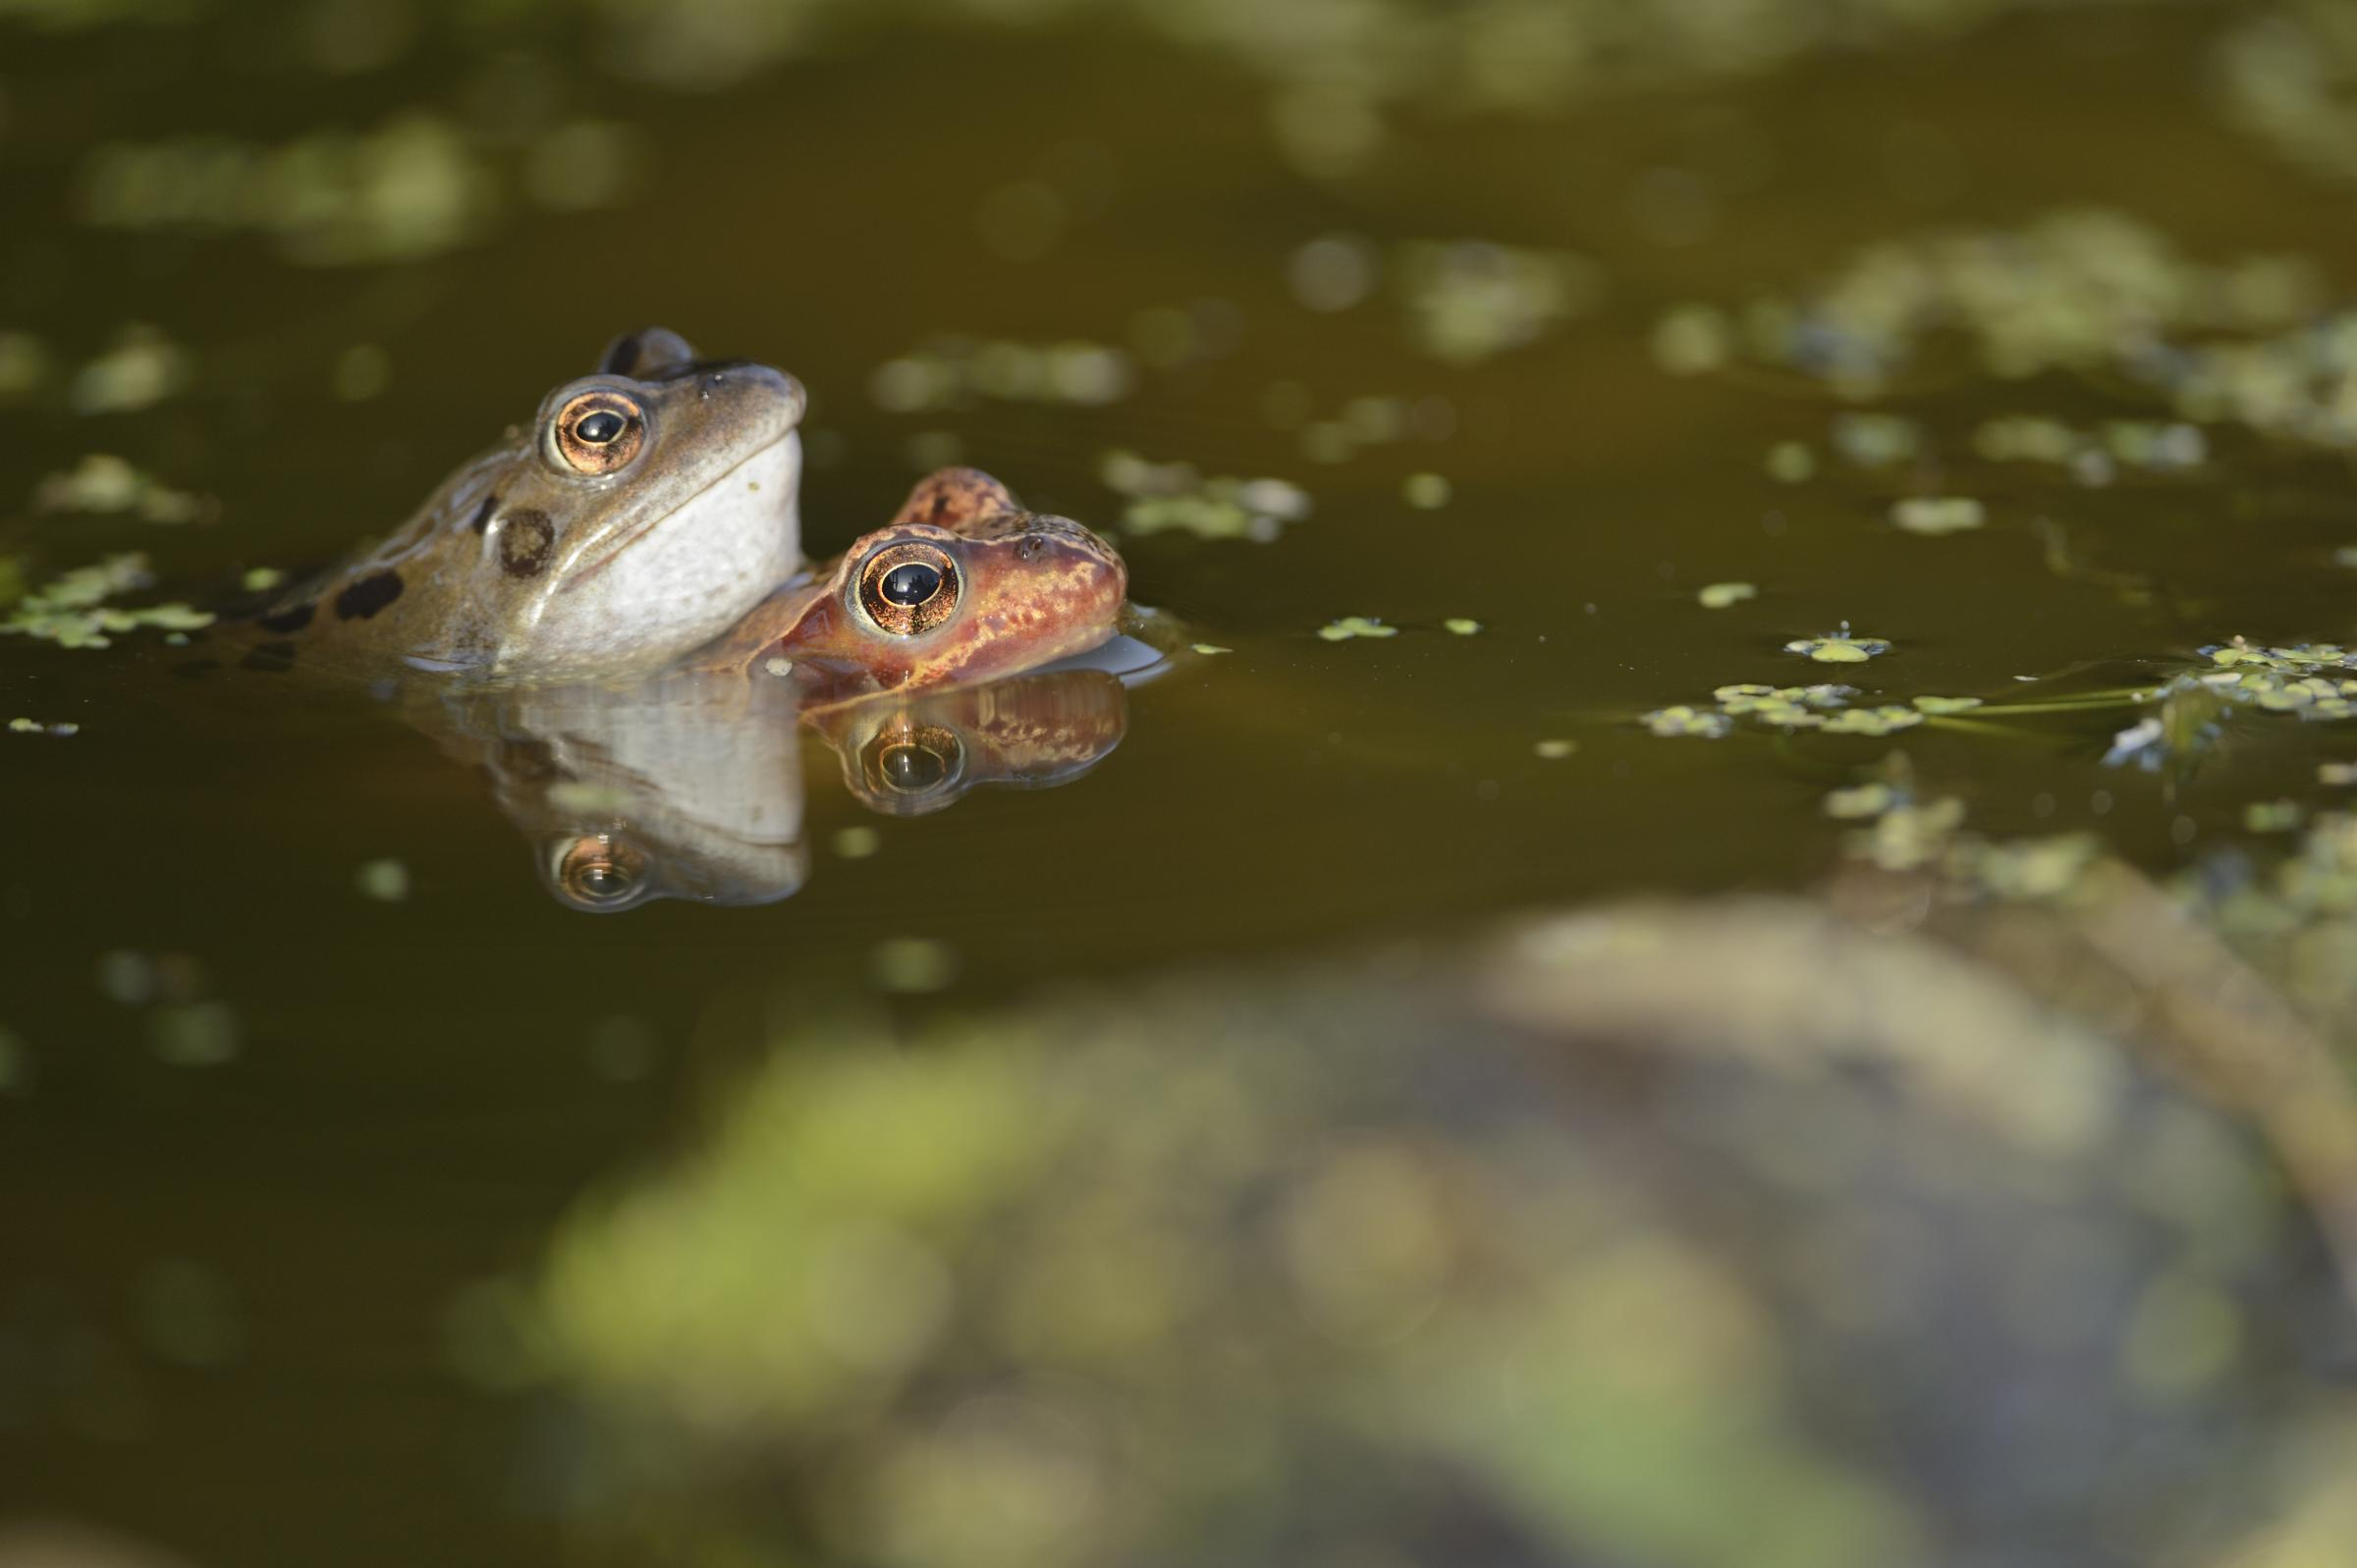 Biodiversity projects share fund to boost nature in urban areas